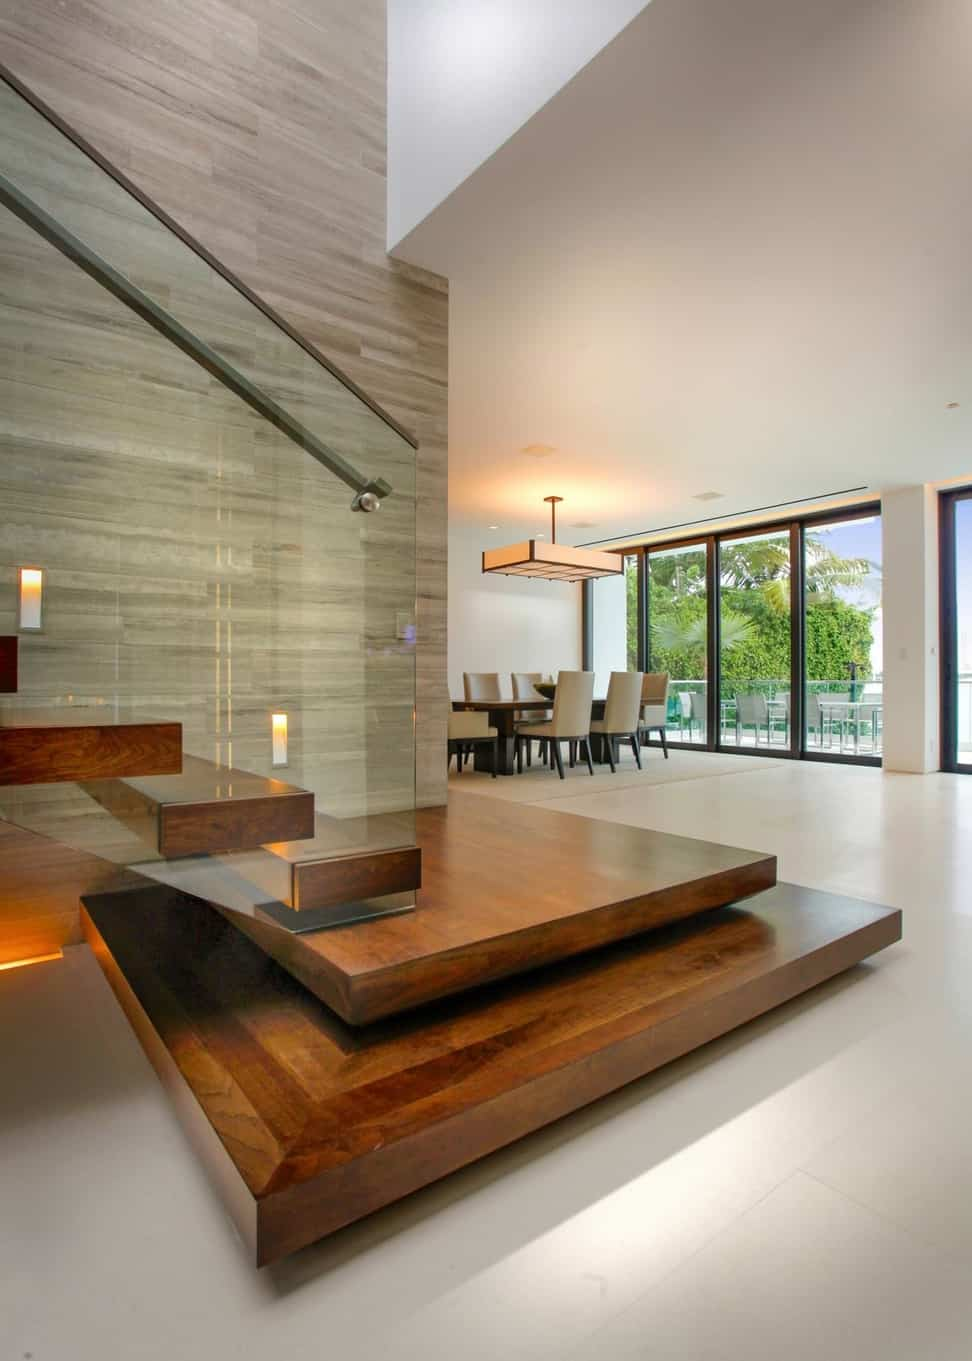 photos hgtv modern staircase with floating wood steps glass railing interior glass railings interior design contemporary interior design school nyc blogs commercial designers apps app websit 1